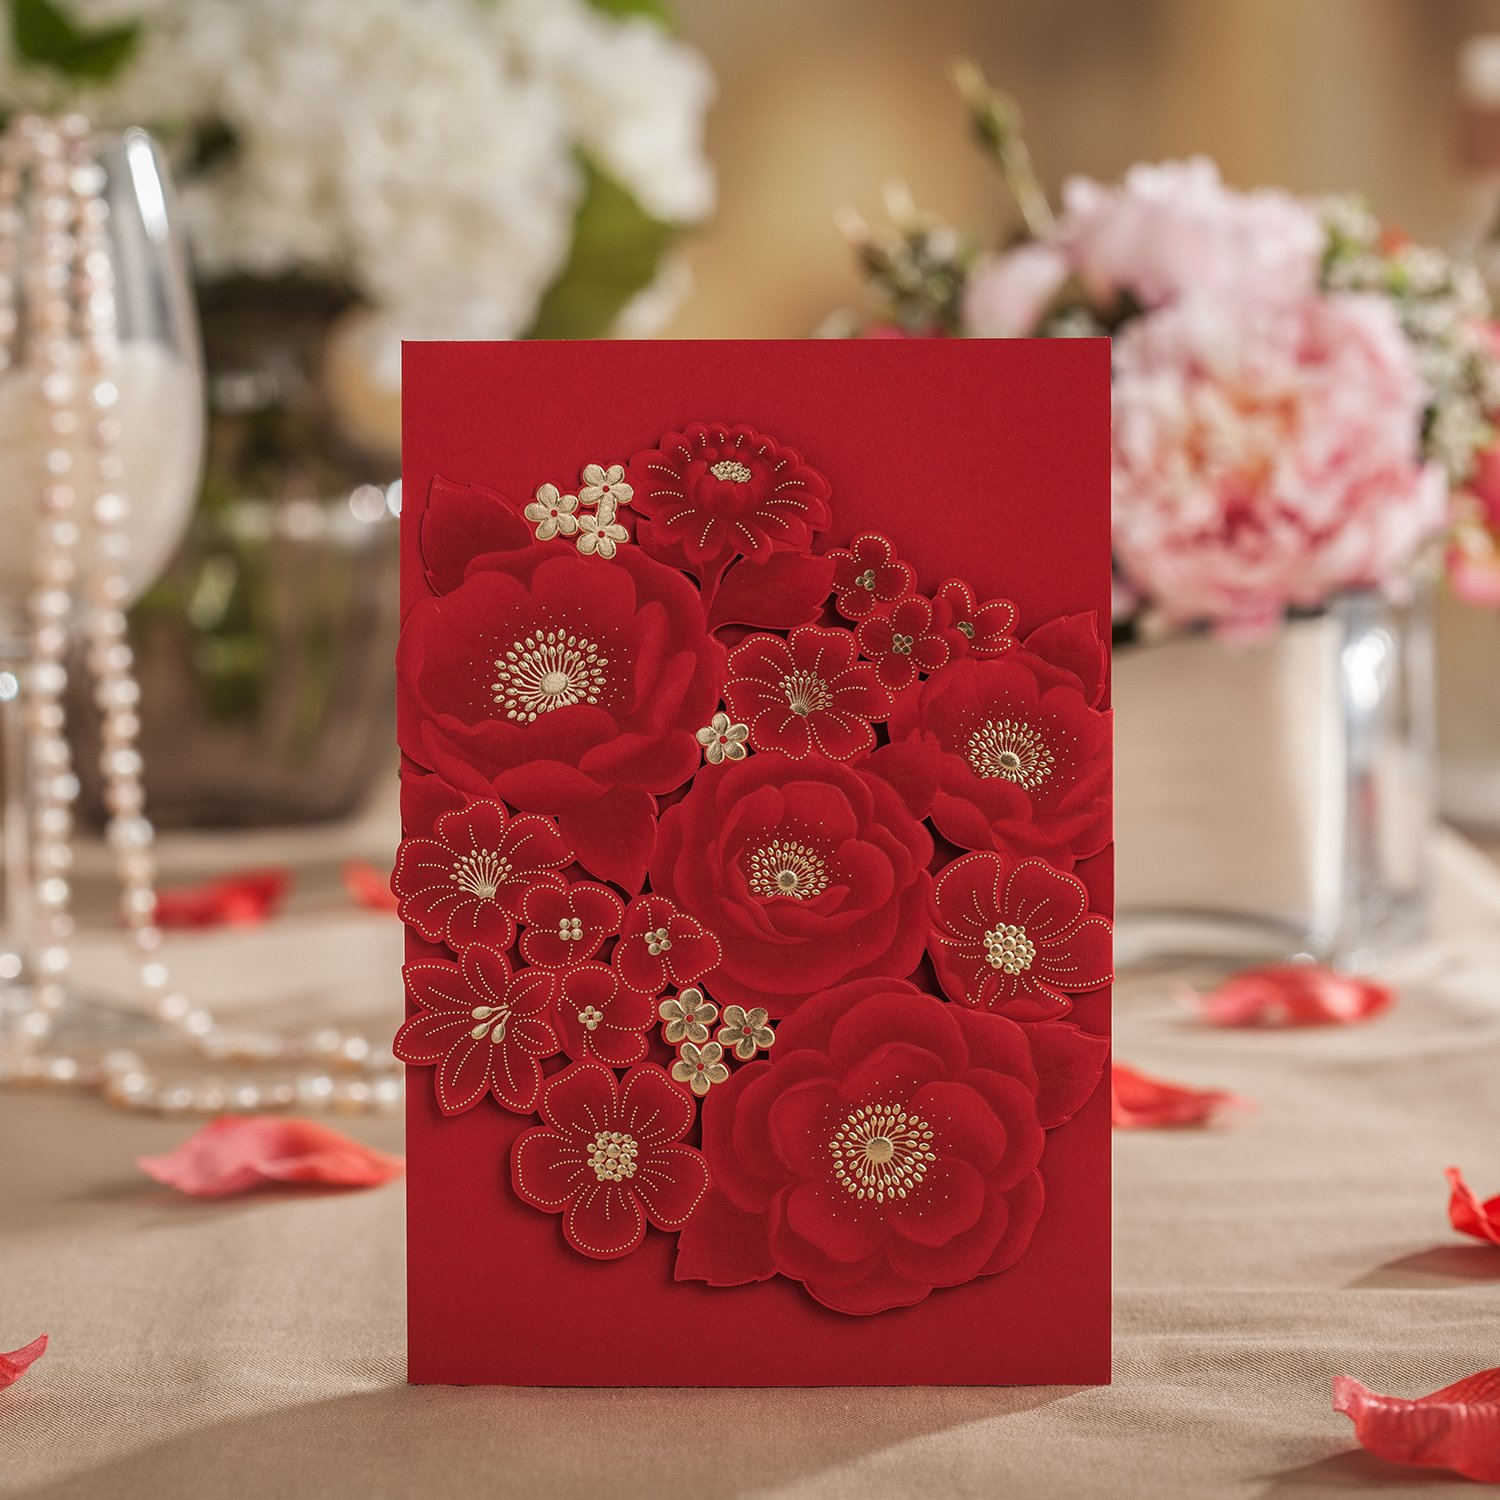 Wishmade Wedding Invitation Cards 20 Sets Wedding Invitation Cards 20 Red Flower Laser Cut Wedding Invitations Card Personalized Custom Printable with Envelope & Seals Wedding Supplies